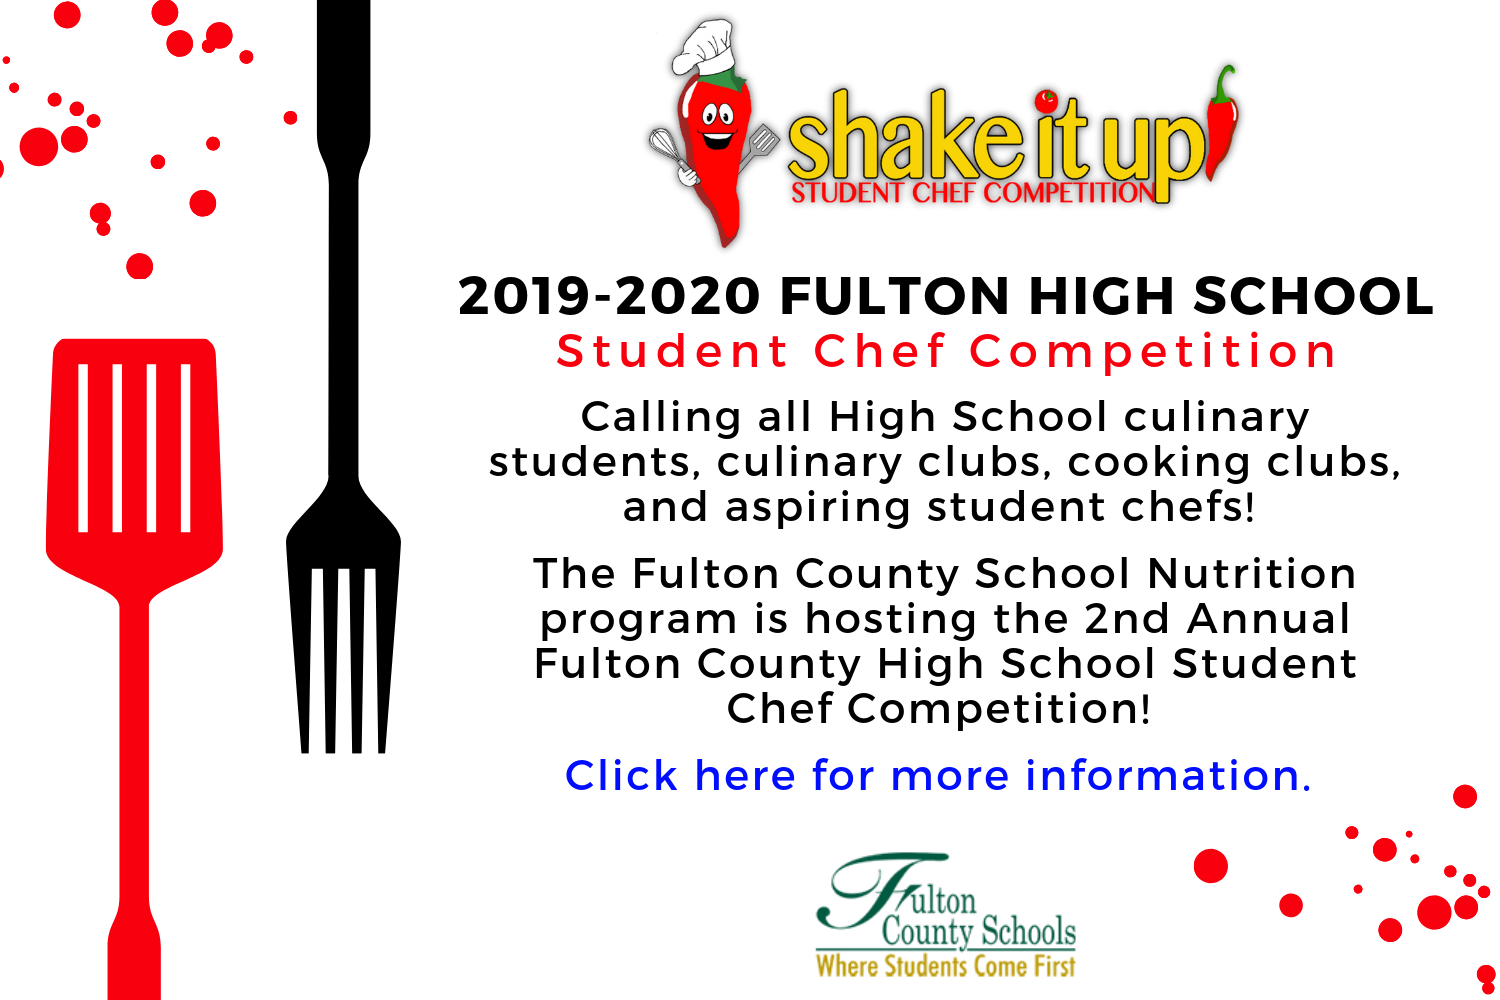 2019 - 2020 Fulton County High School Student Chef Compation. Click here for more information